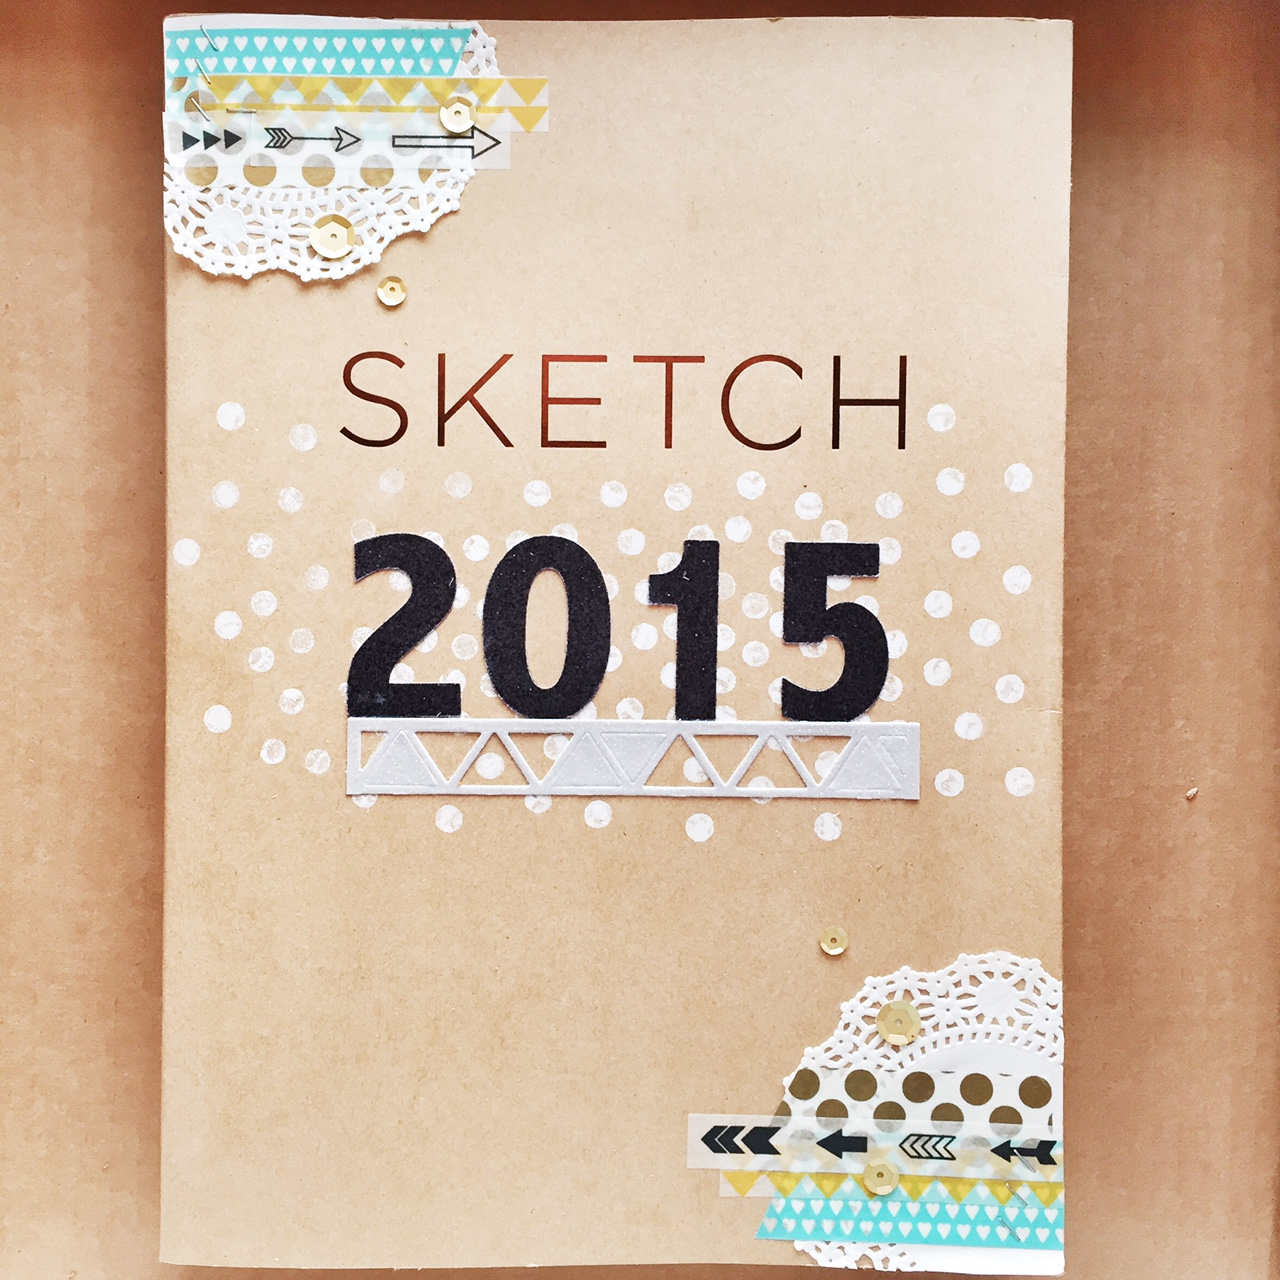 Sketch Book Cover ~ Stuckonusketches sous die cut challenge sketchbook cover